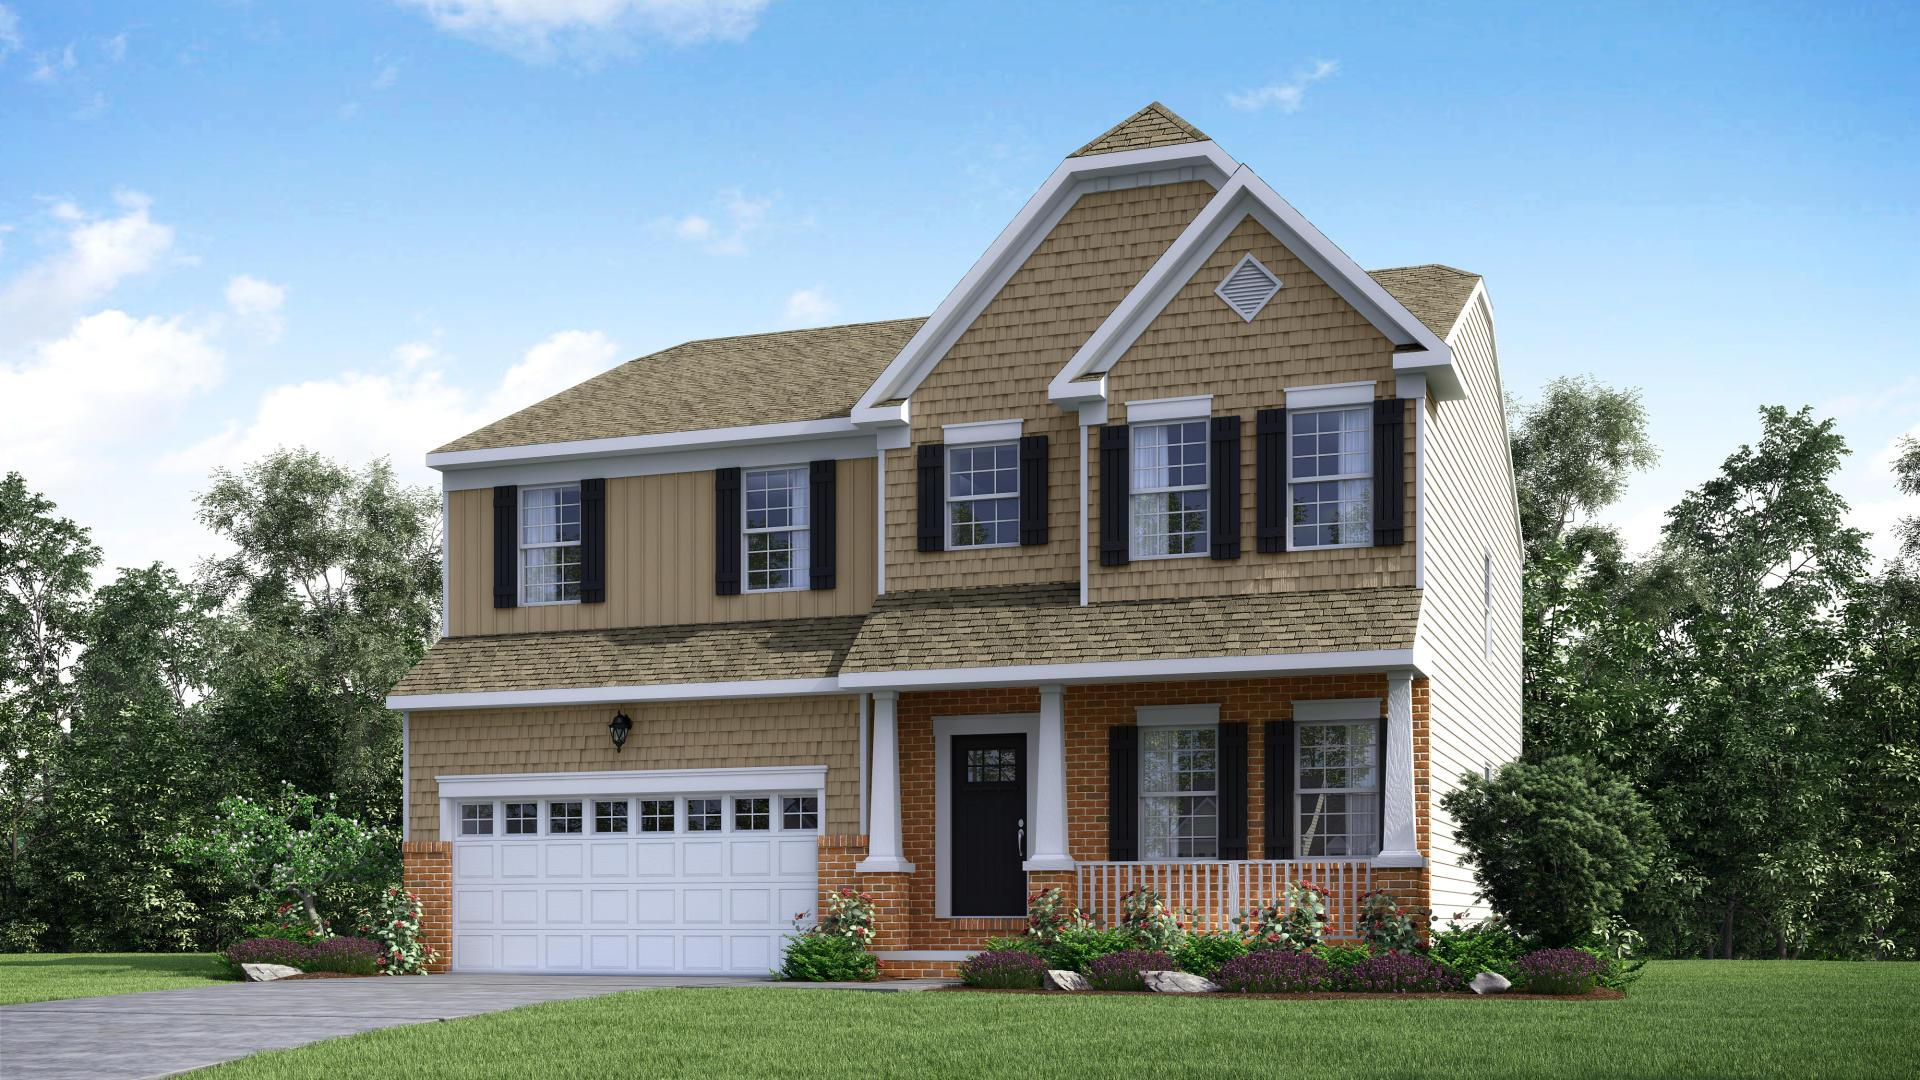 Exterior:Elevation: E Opt Carolina Inspired Facade, Porch, & Garage Door